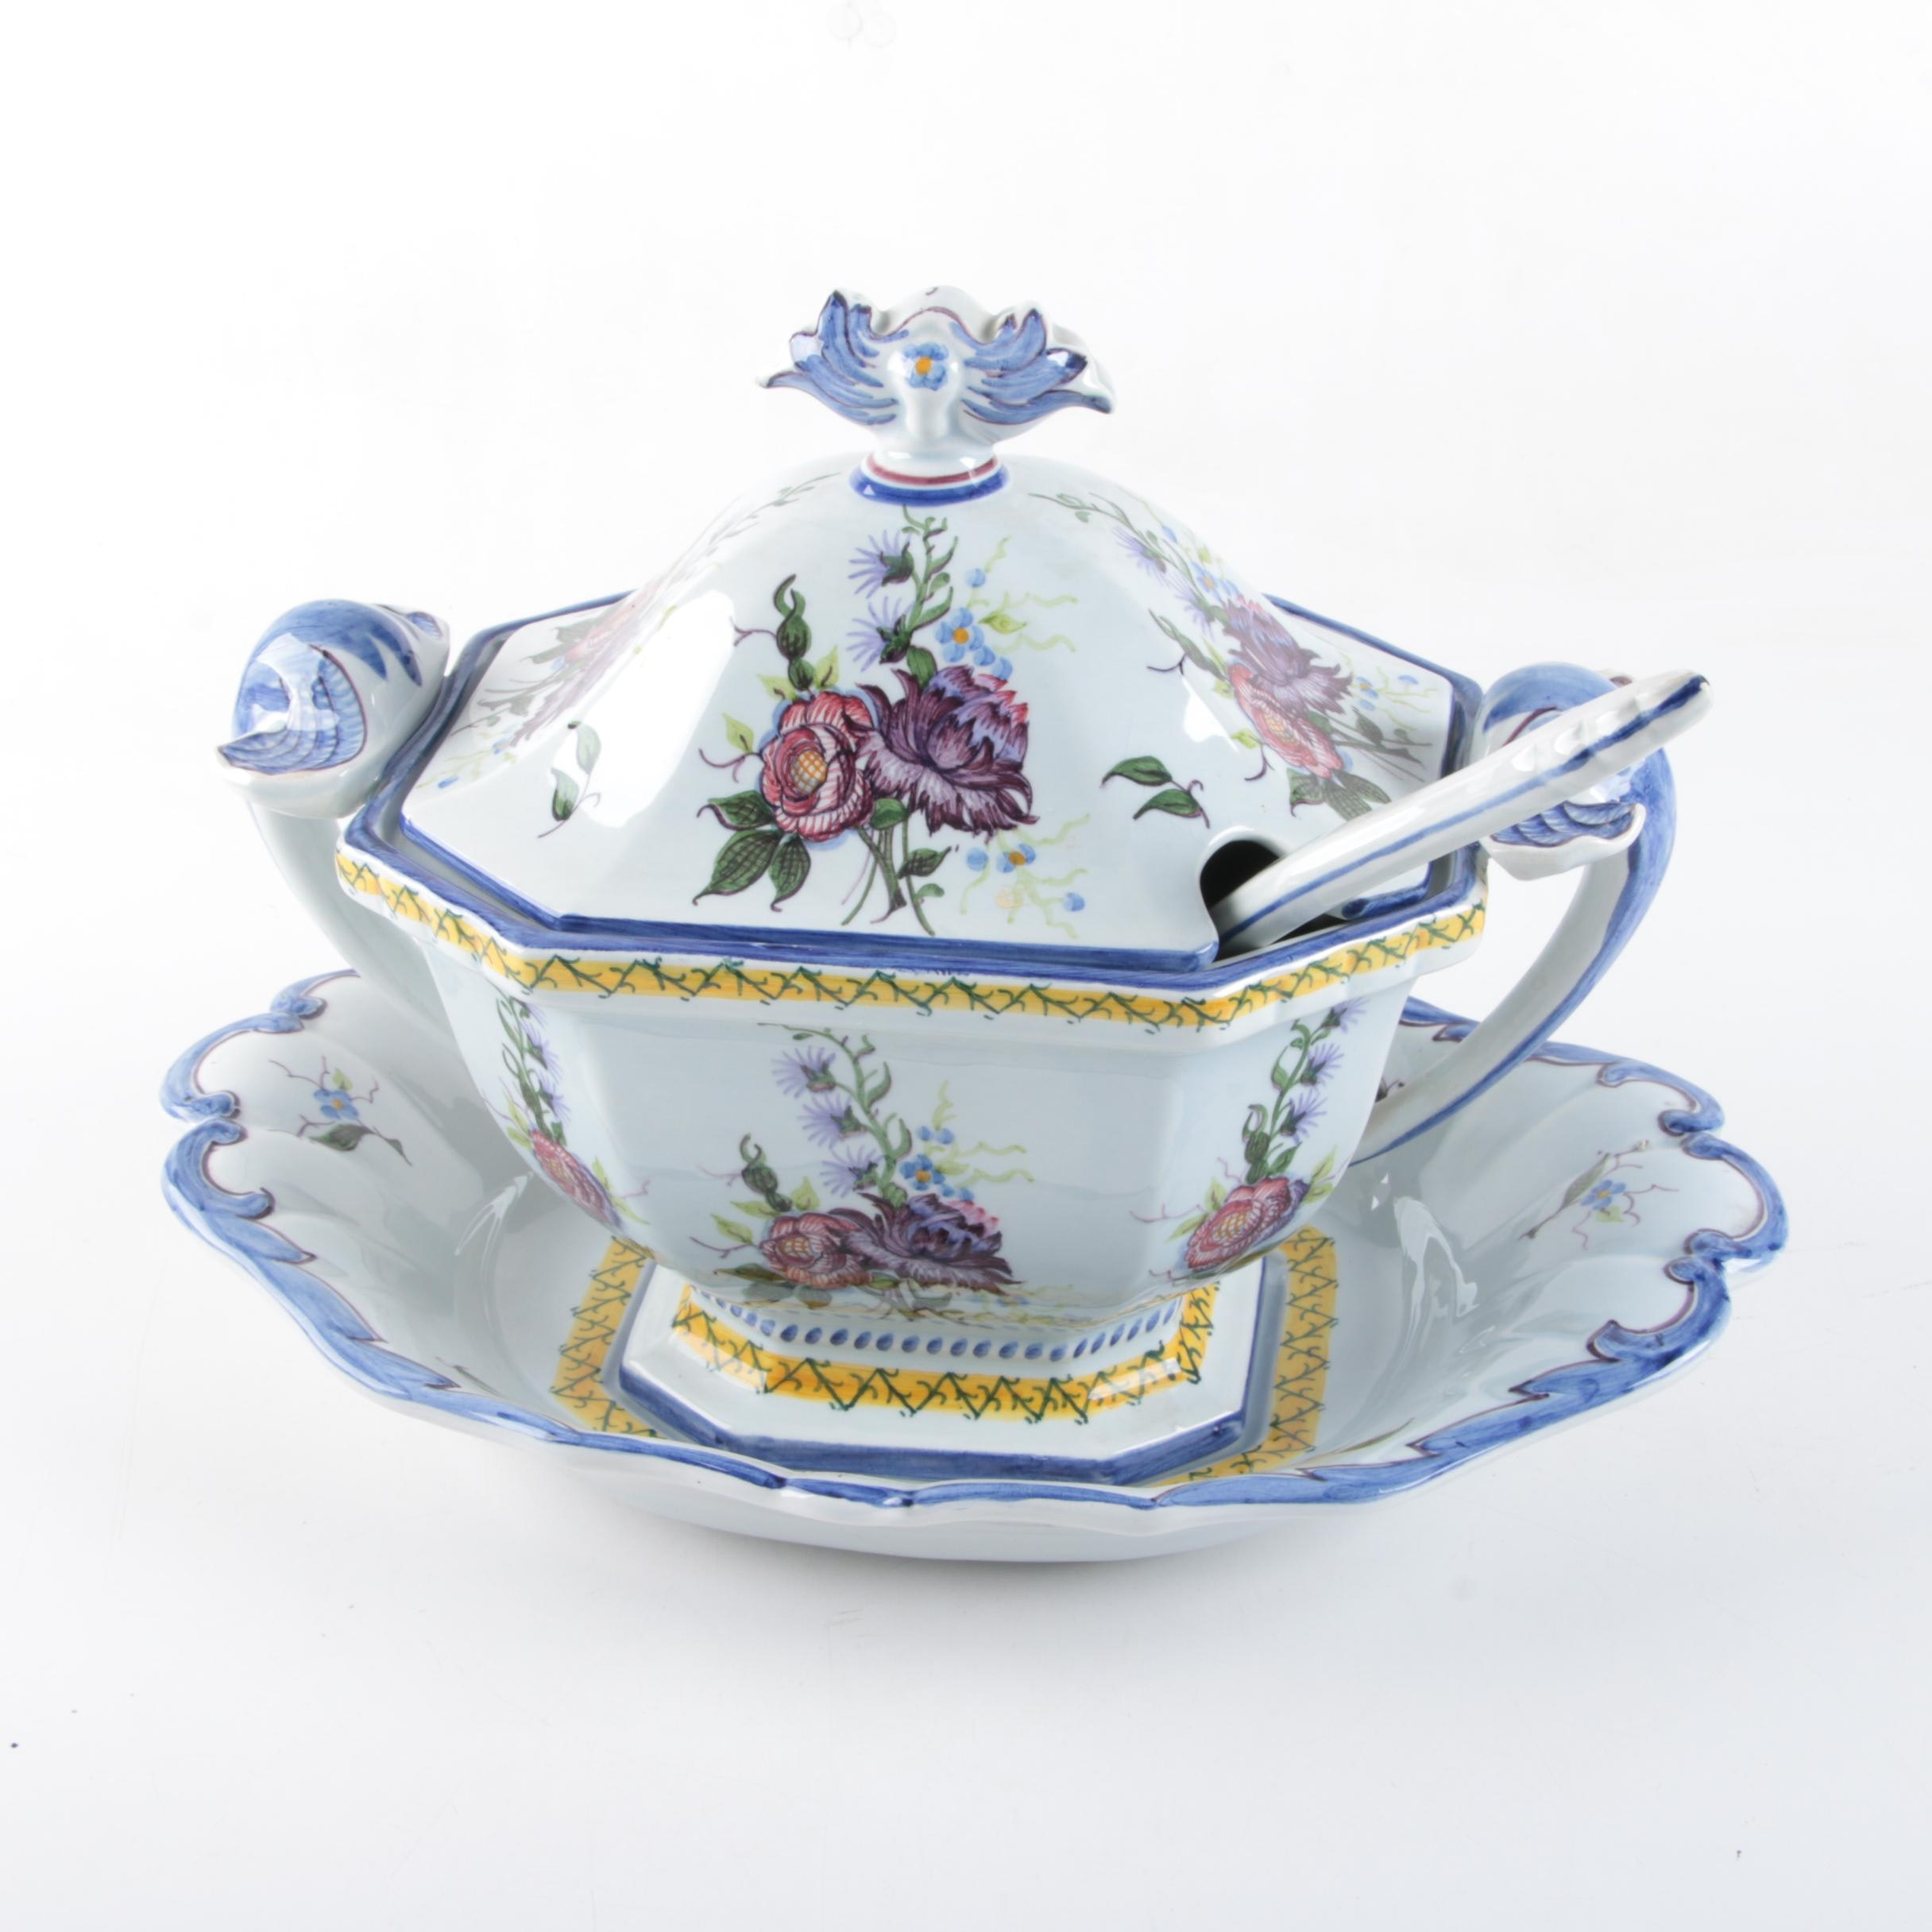 Portuguese Ceramic Soup Tureen with Tray